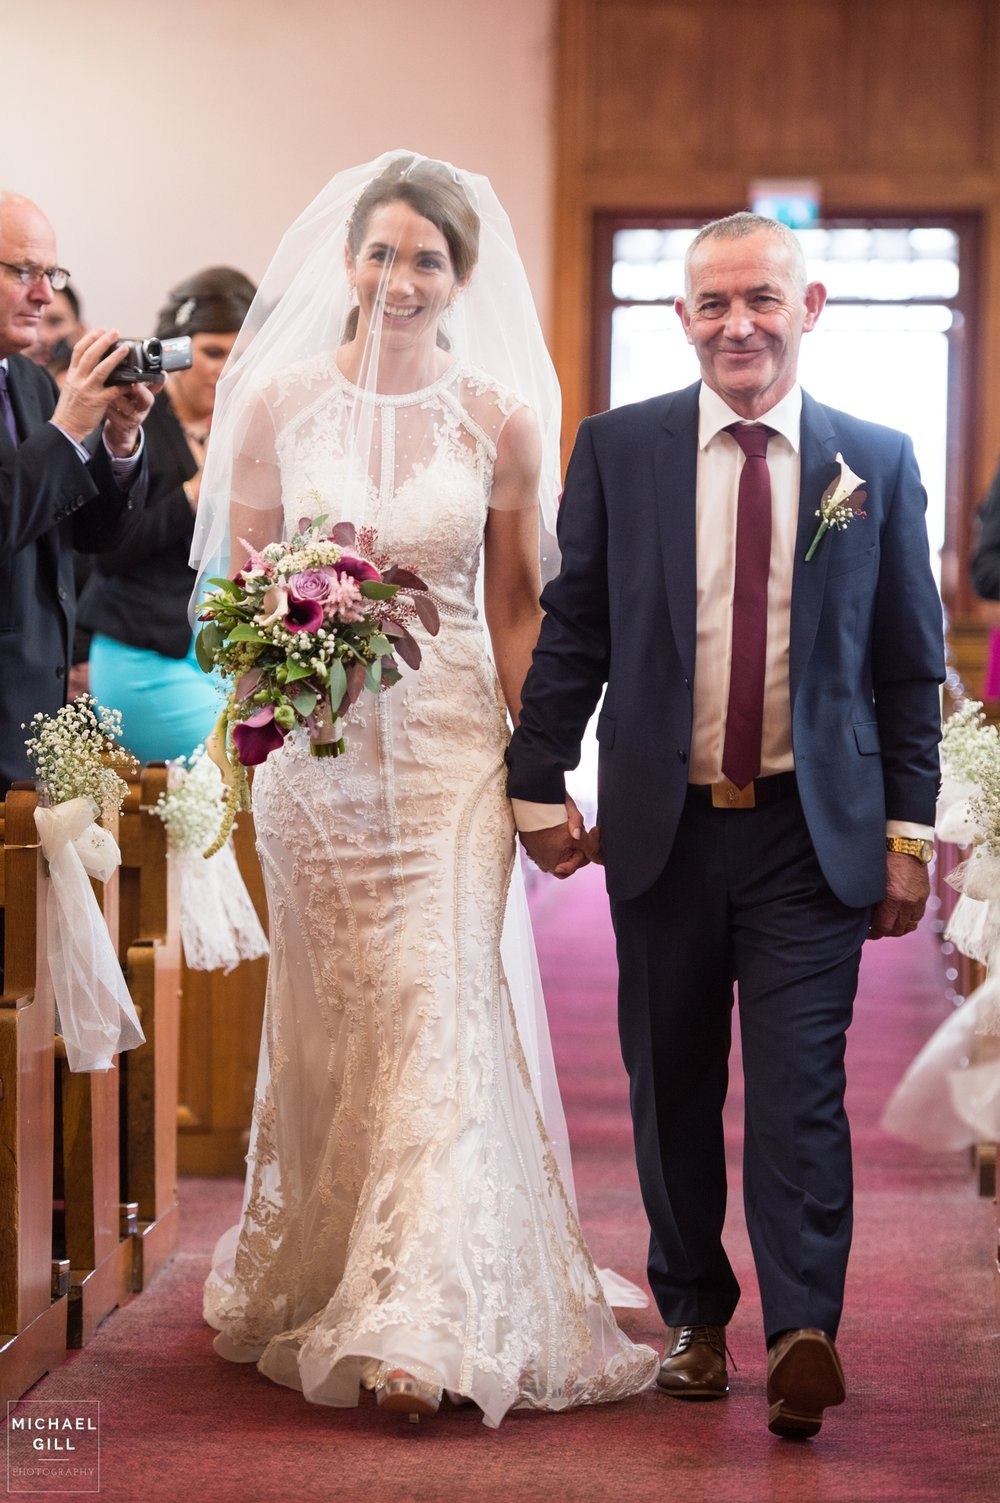 Michael_Gill_Photography_Kinnego_Redcastle_Hotel_Wedding3.jpg